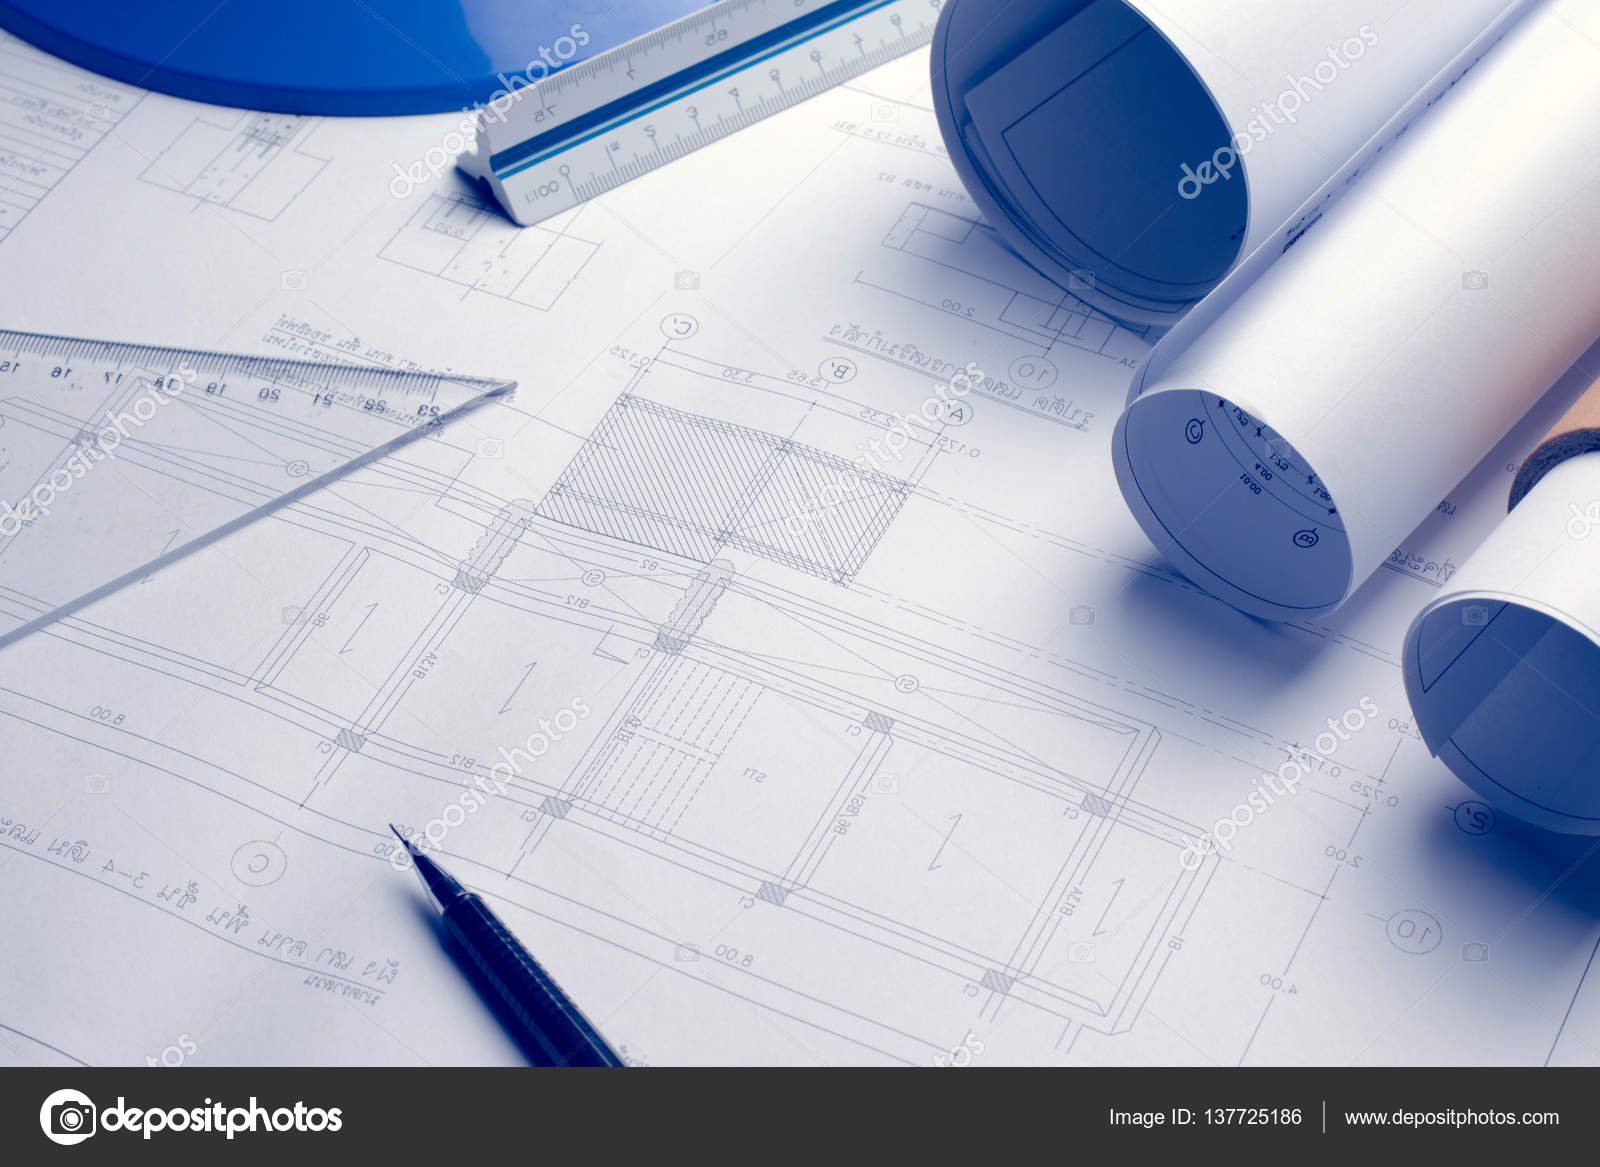 Architectural blueprints and blueprint rolls and a drawing instr architectural blueprints and blueprint rolls and a drawing instr stock photo malvernweather Image collections